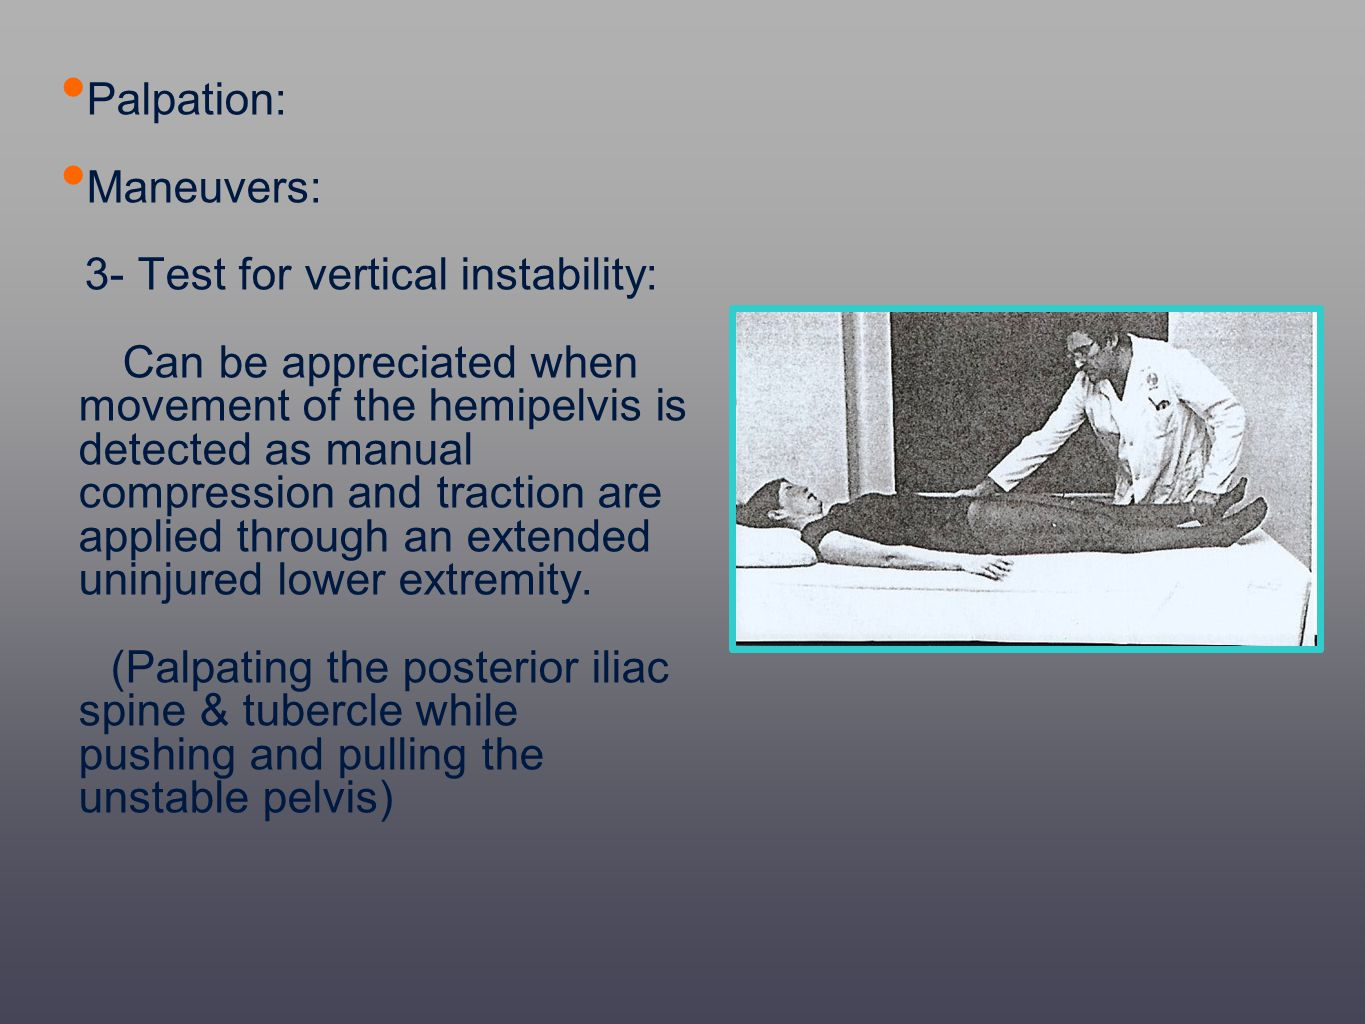 Palpation: Maneuvers: 3- Test for vertical instability: